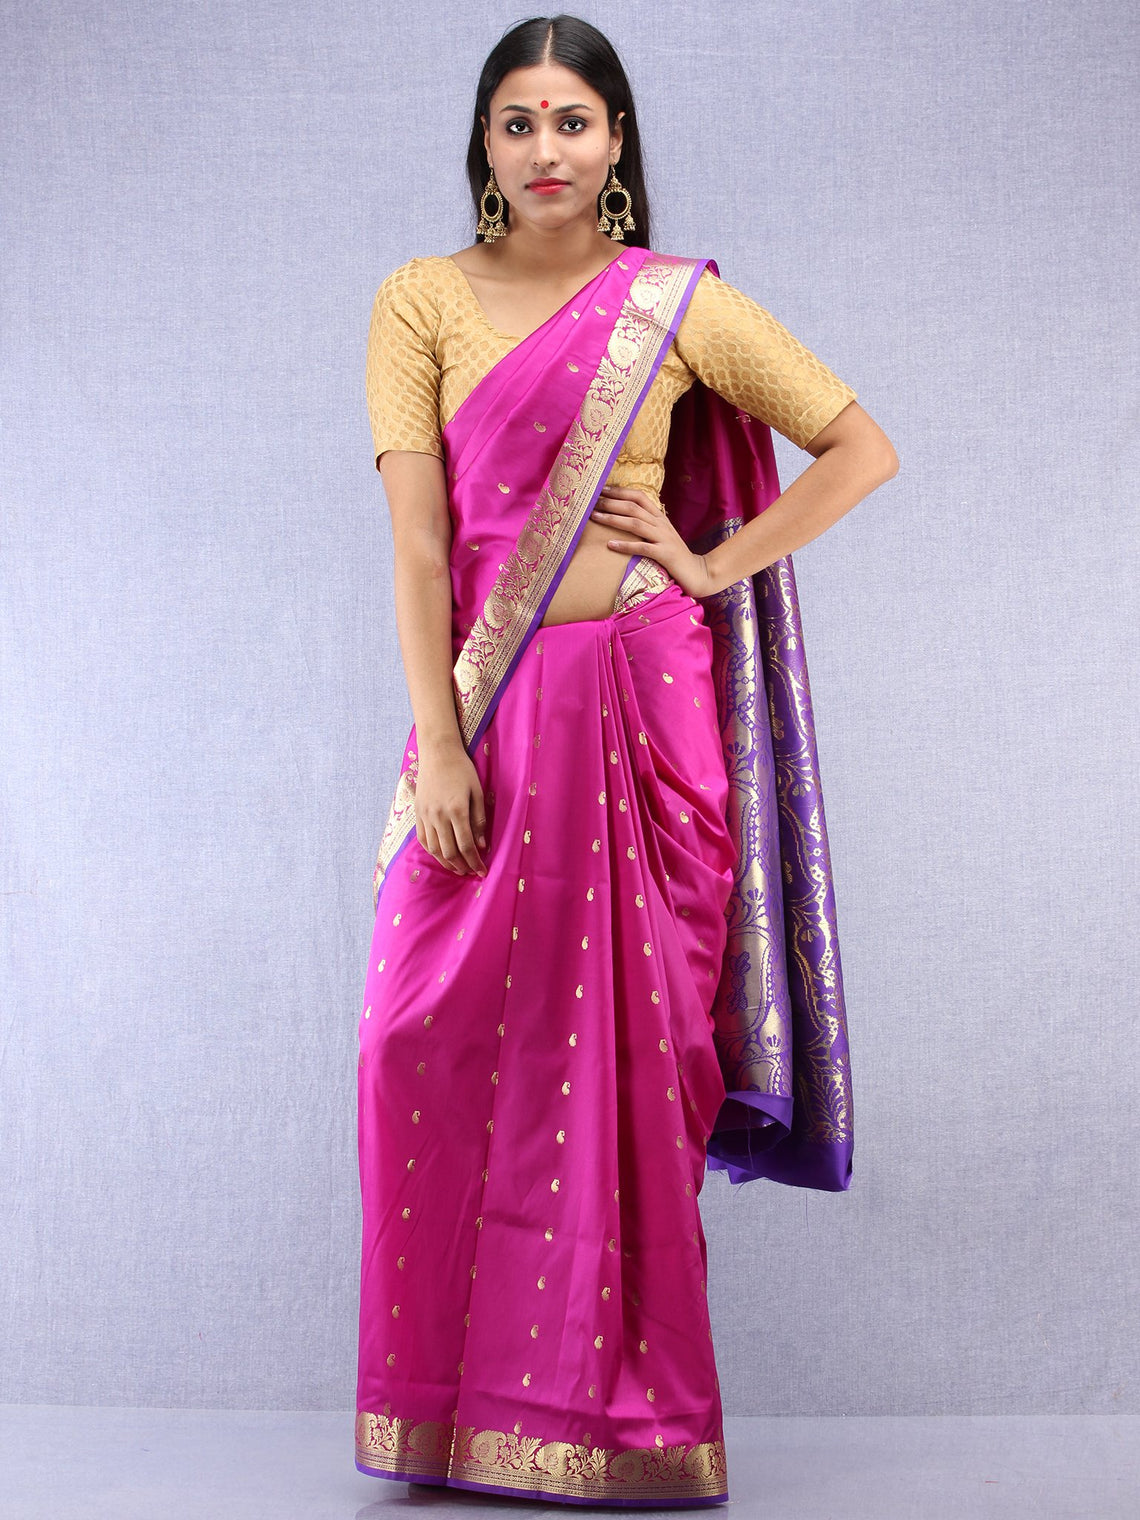 17672ac0b50d8f Banarasee Art Silk Saree With Zari Work - Onion Pink Gold & Purple -  S031704412 ...